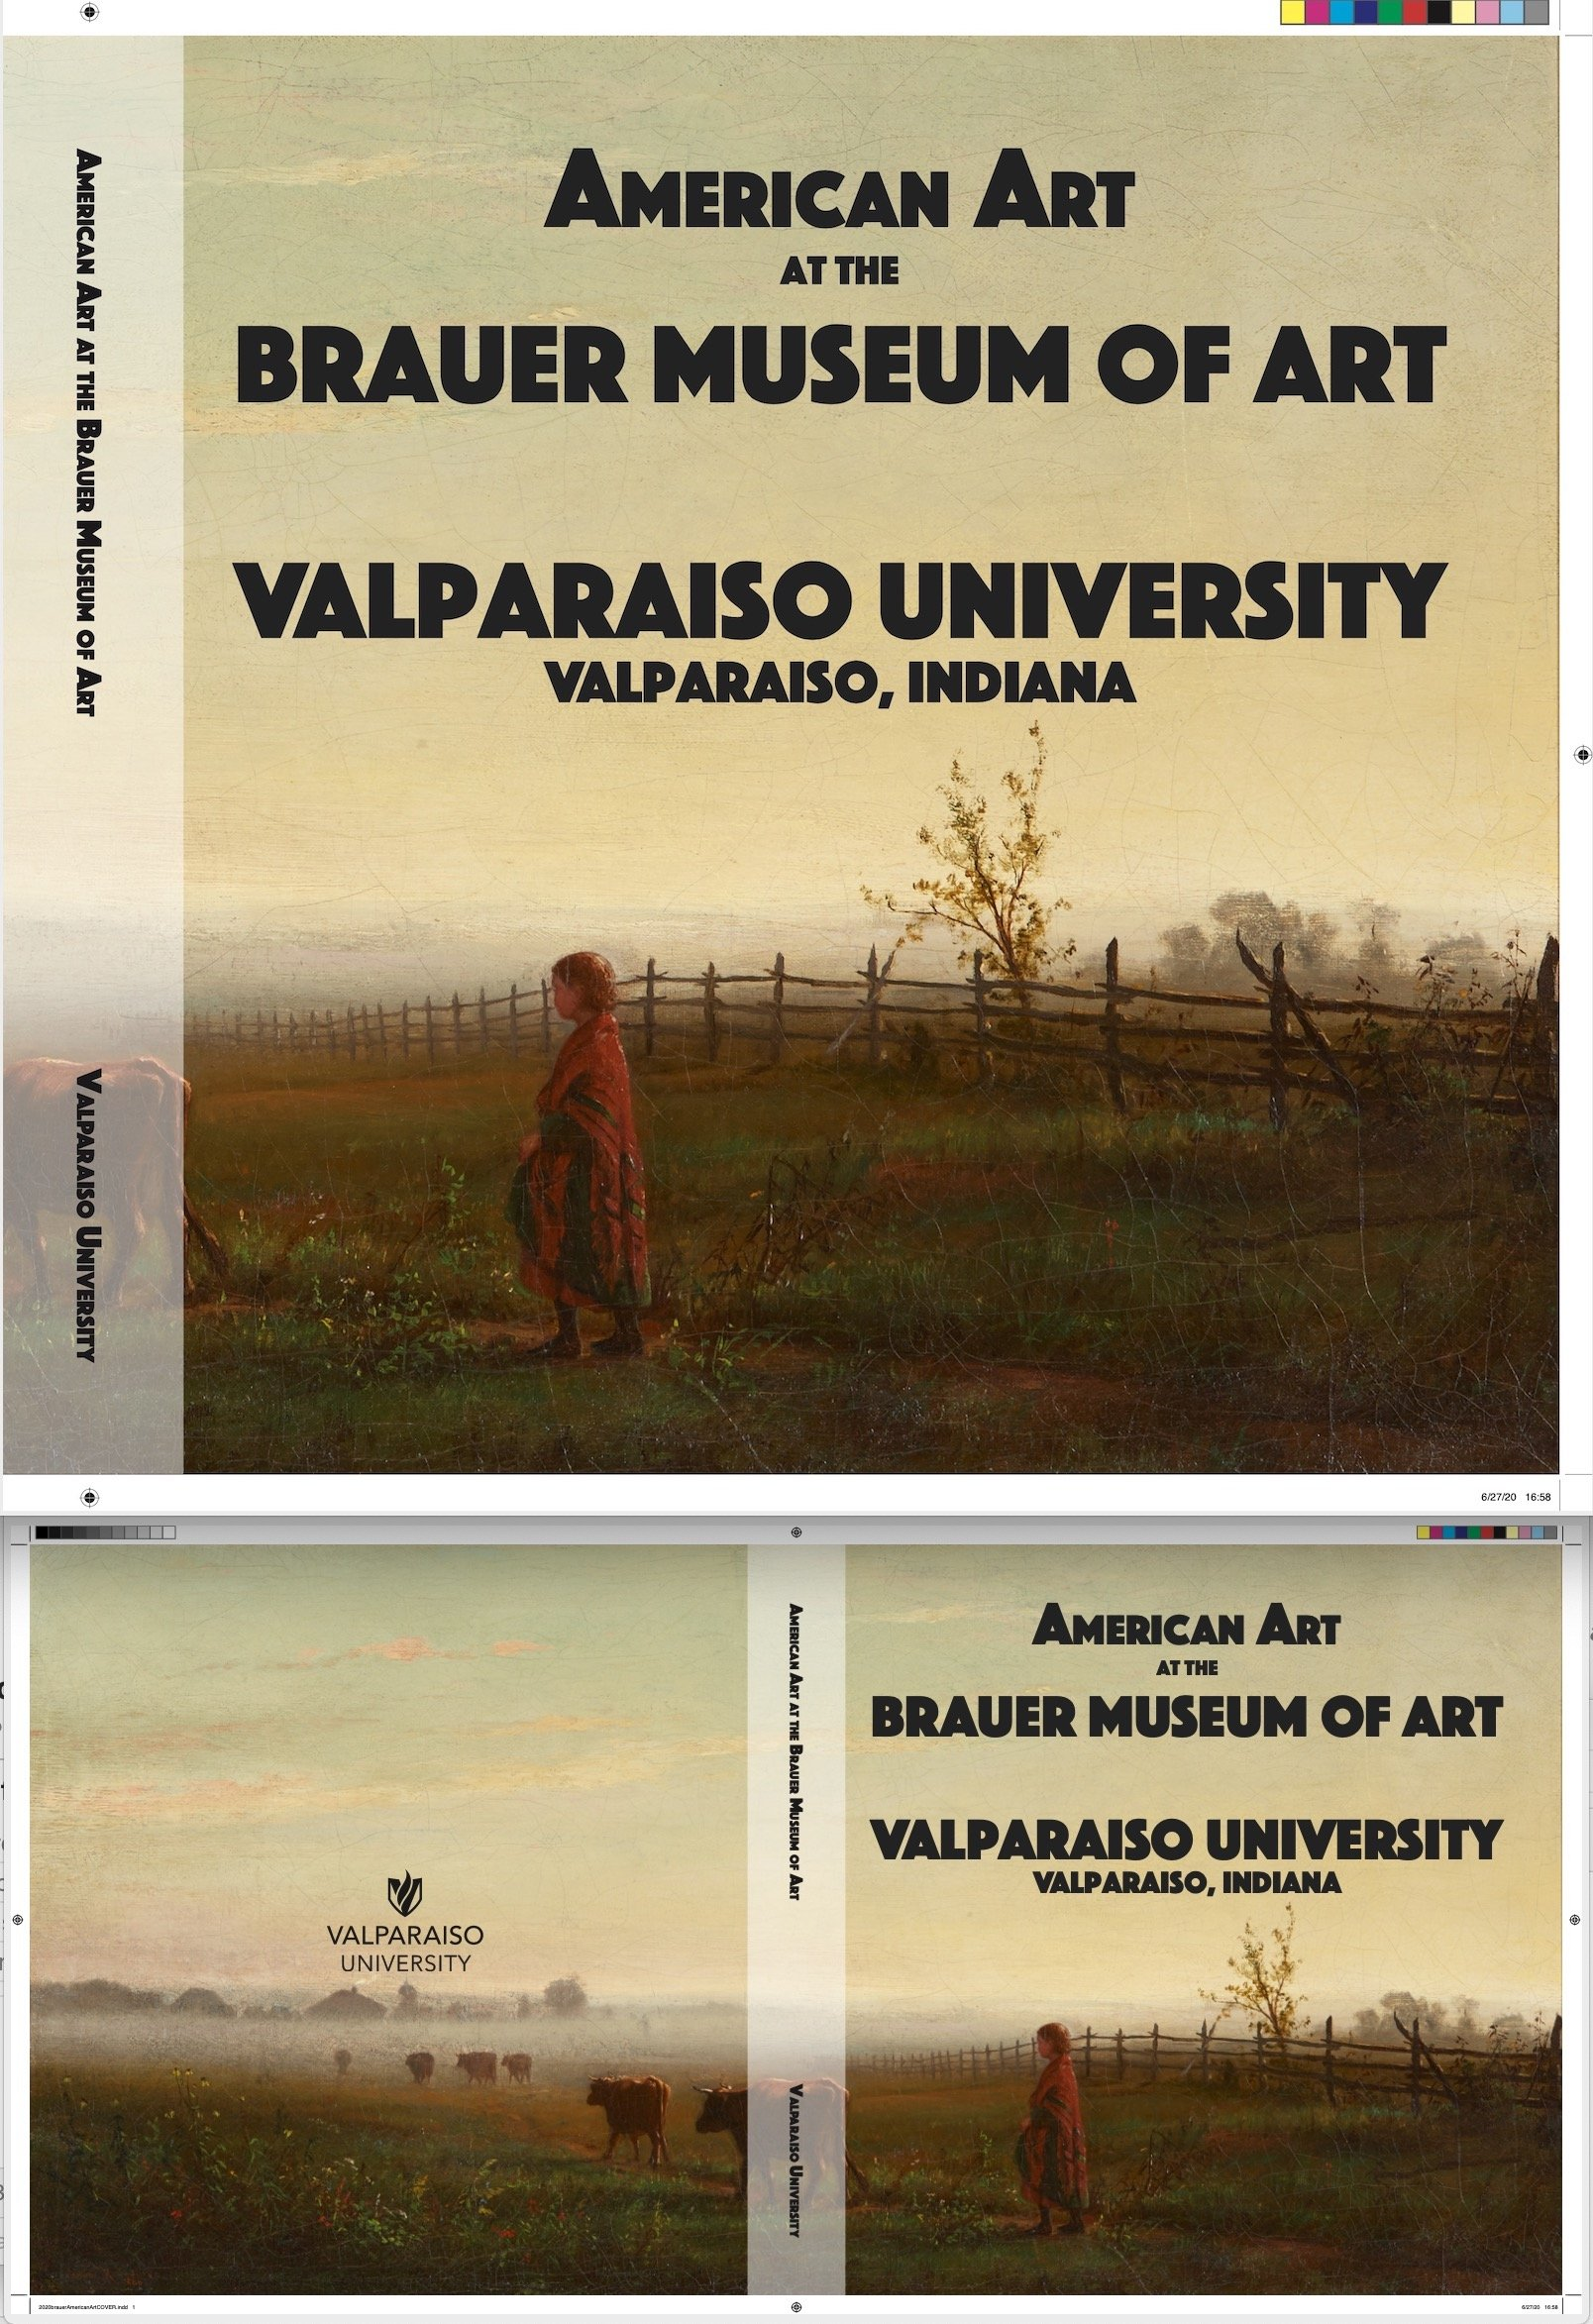 New Book Design for Valparaiso University